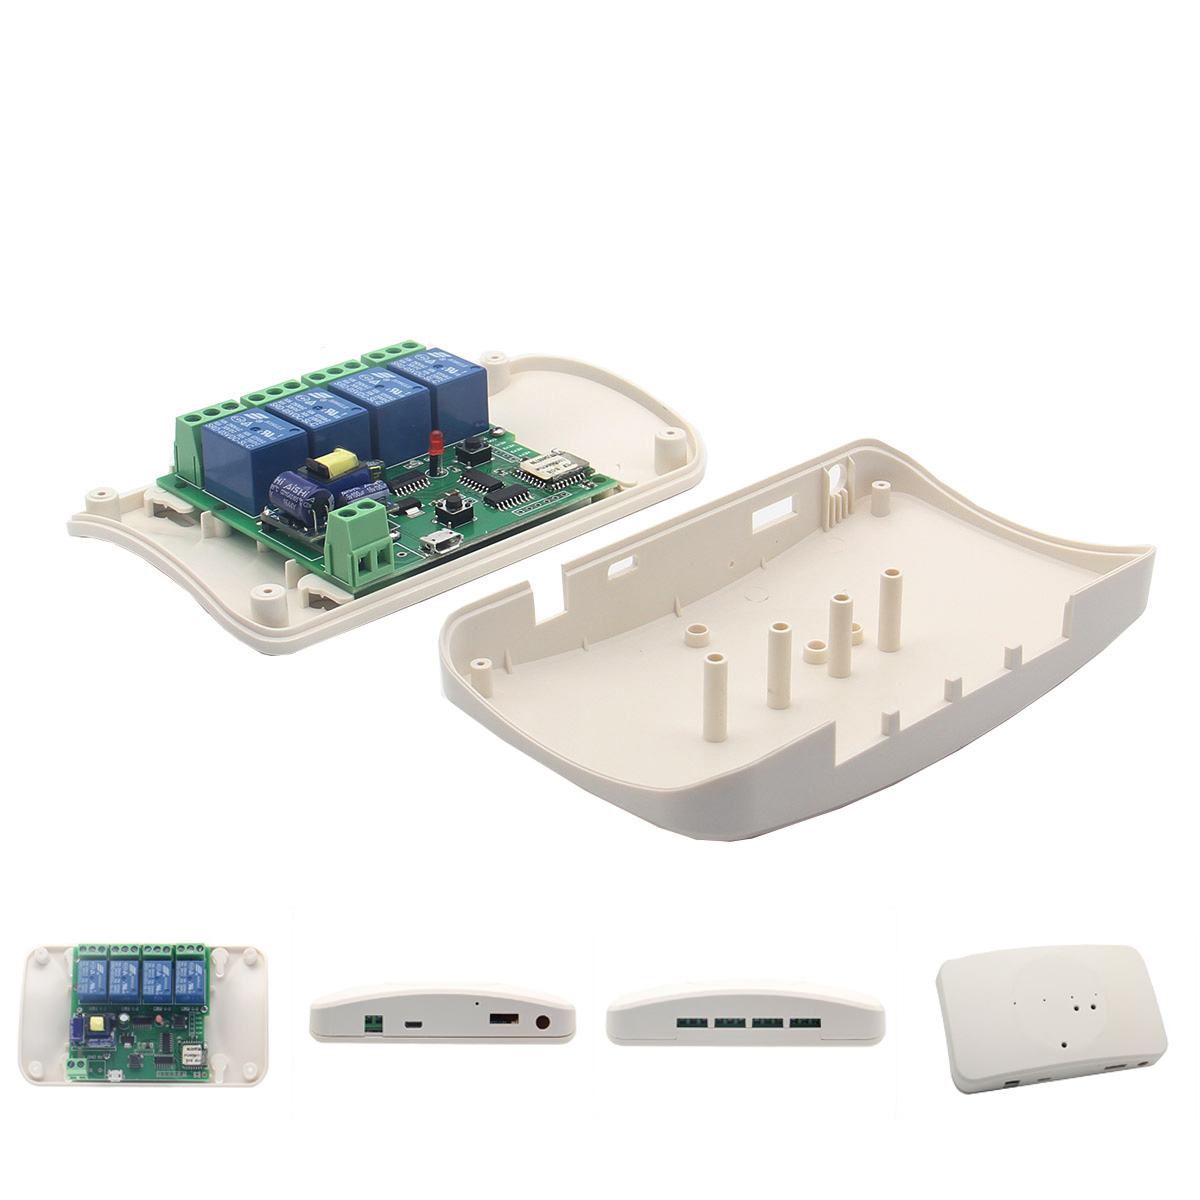 Geekcreit ABS Case For Geekcreit DIY 4 channel Relay Jo